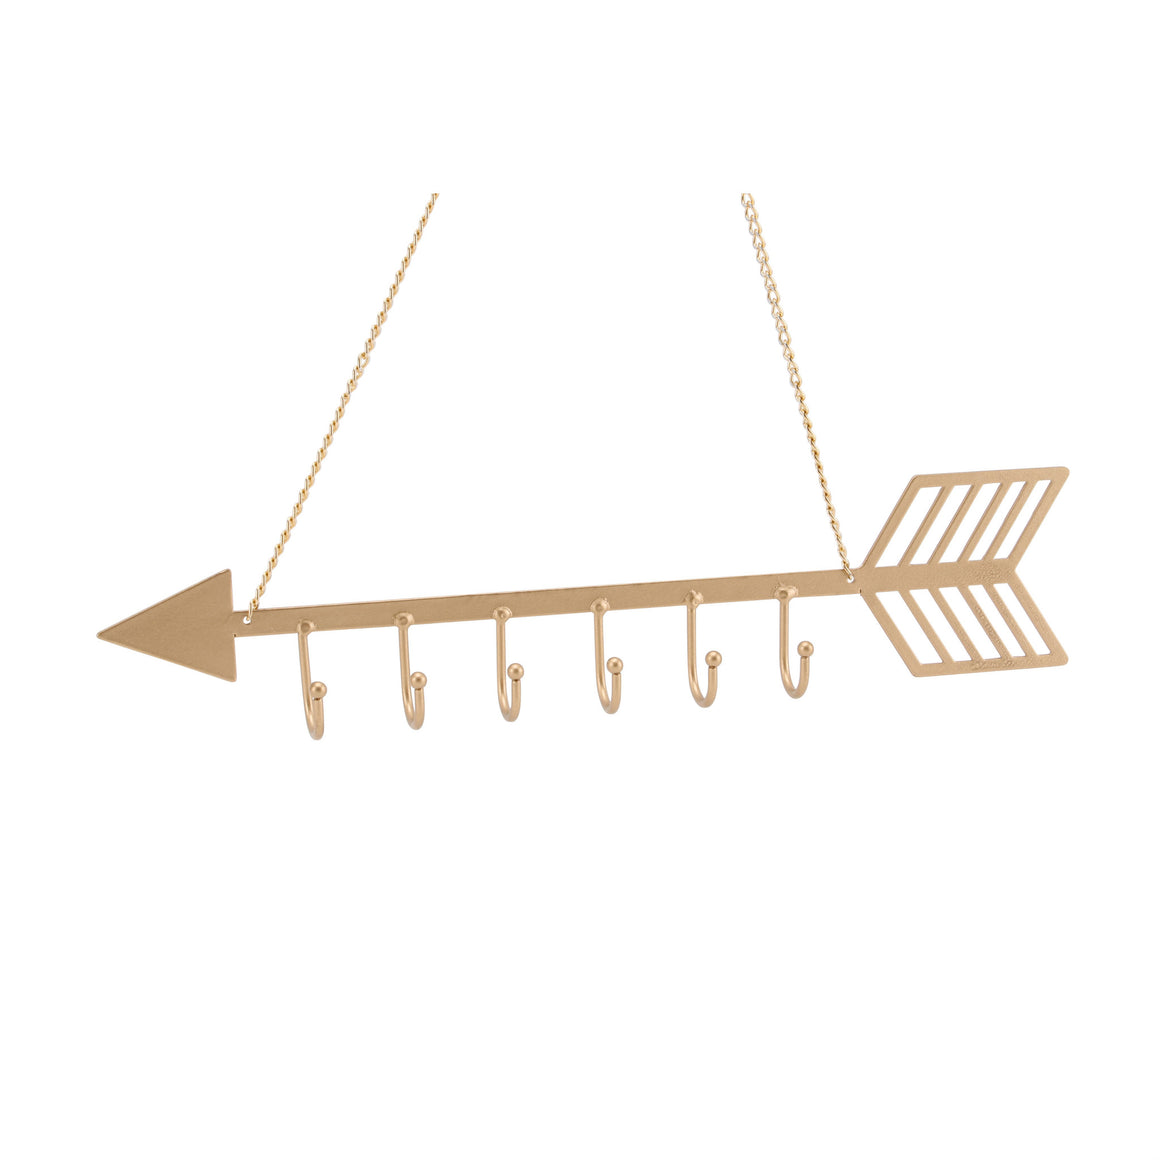 Gold Arrow Jewellery Holder - The Love Trees